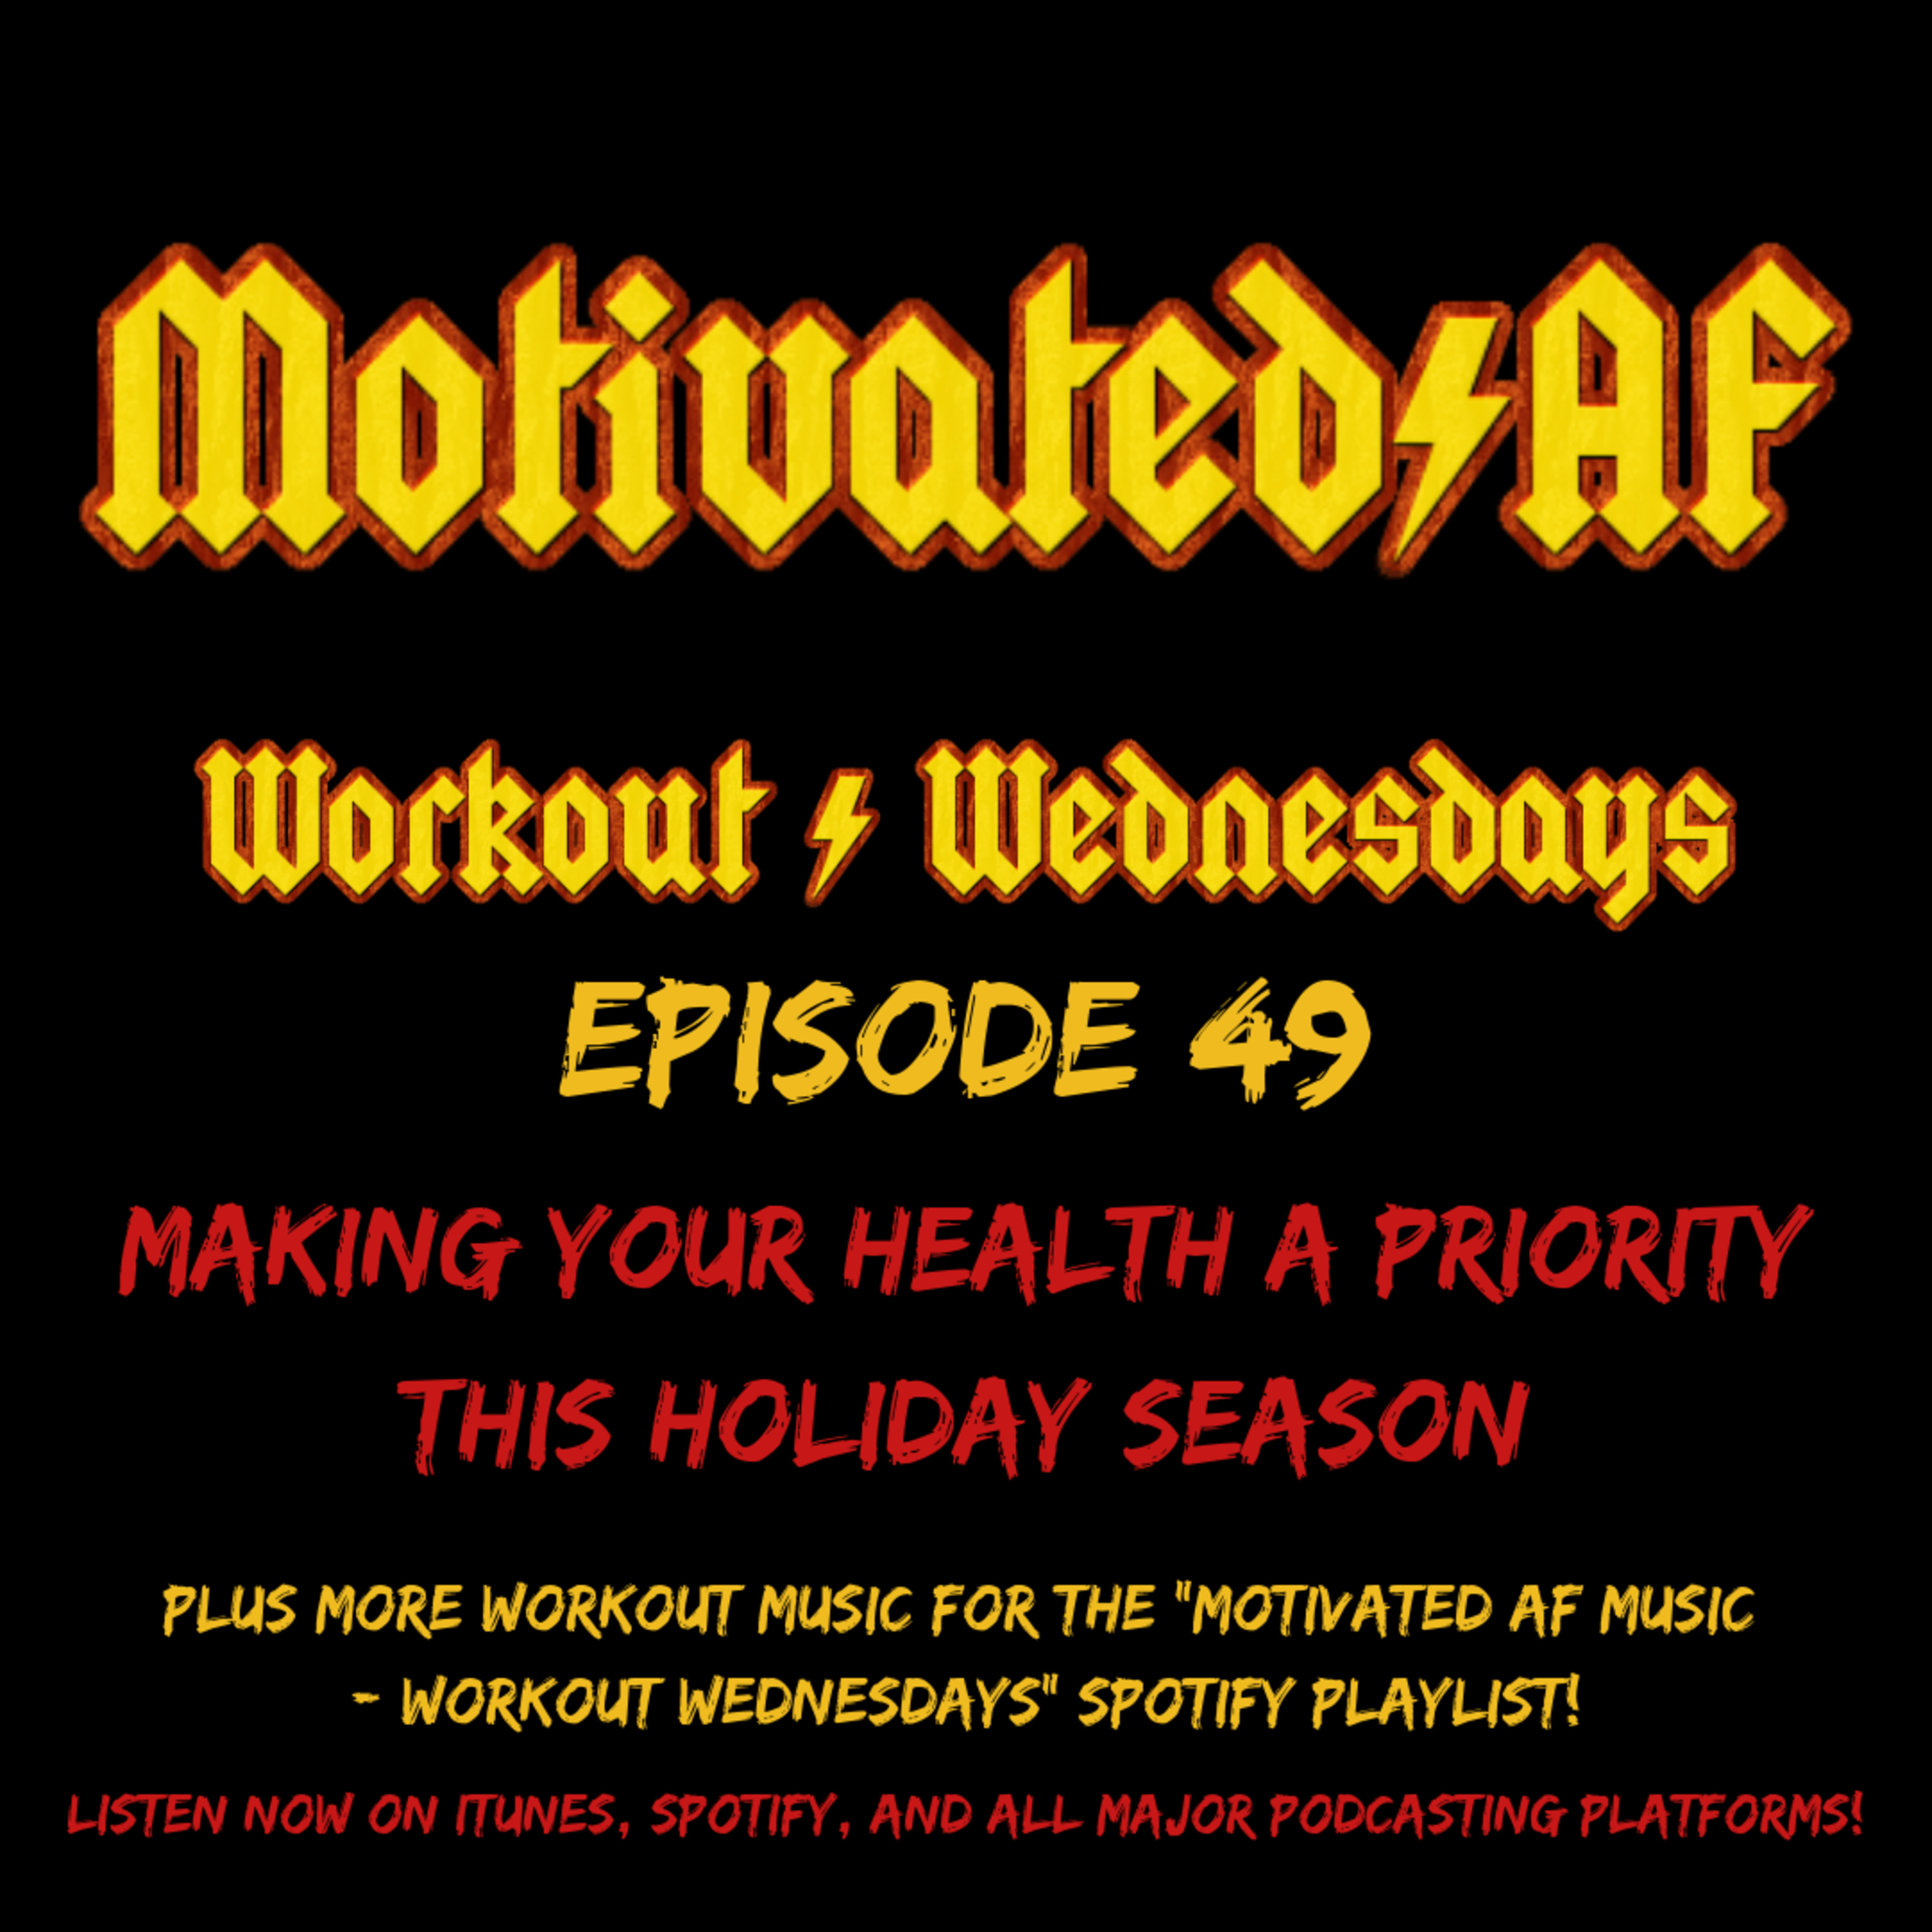 Ep. 49 - Workout Wednesdays: Nov. 28, 2018 - Making Your Health A Priority This Holiday Season